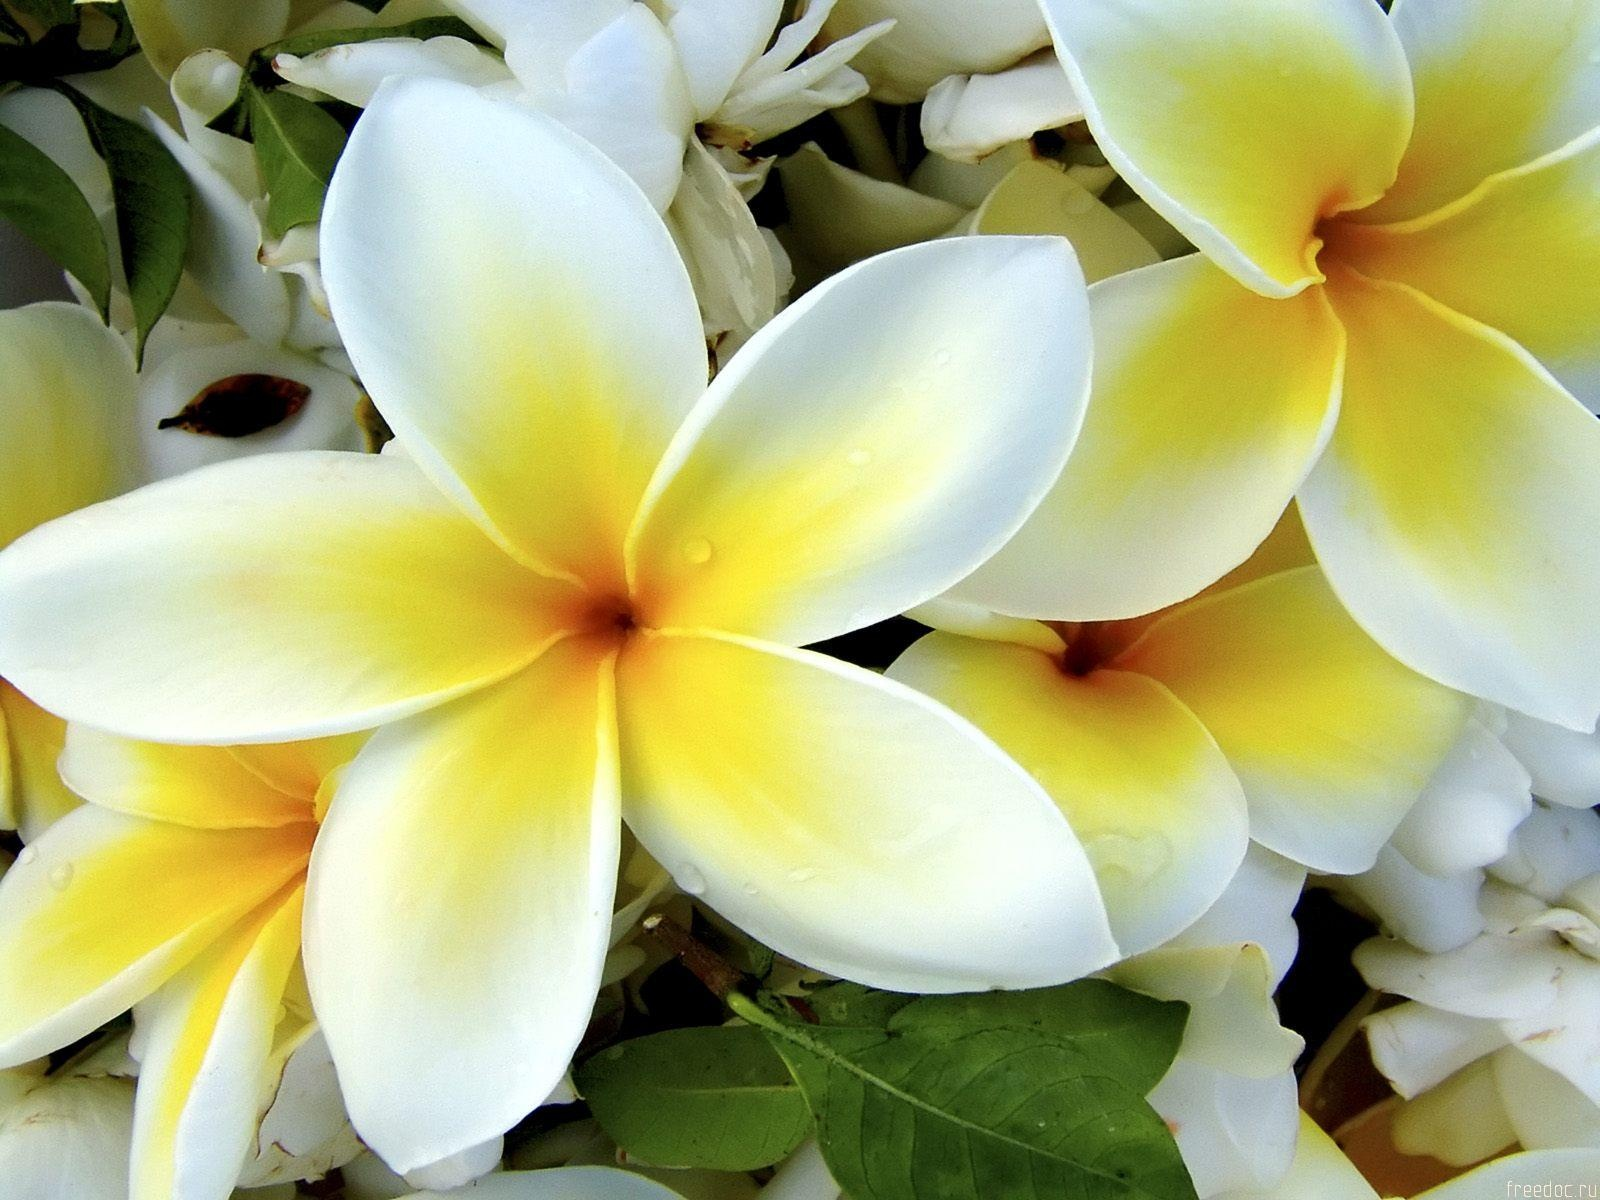 White Yellow Flowers Wallpapers in jpg format for free download